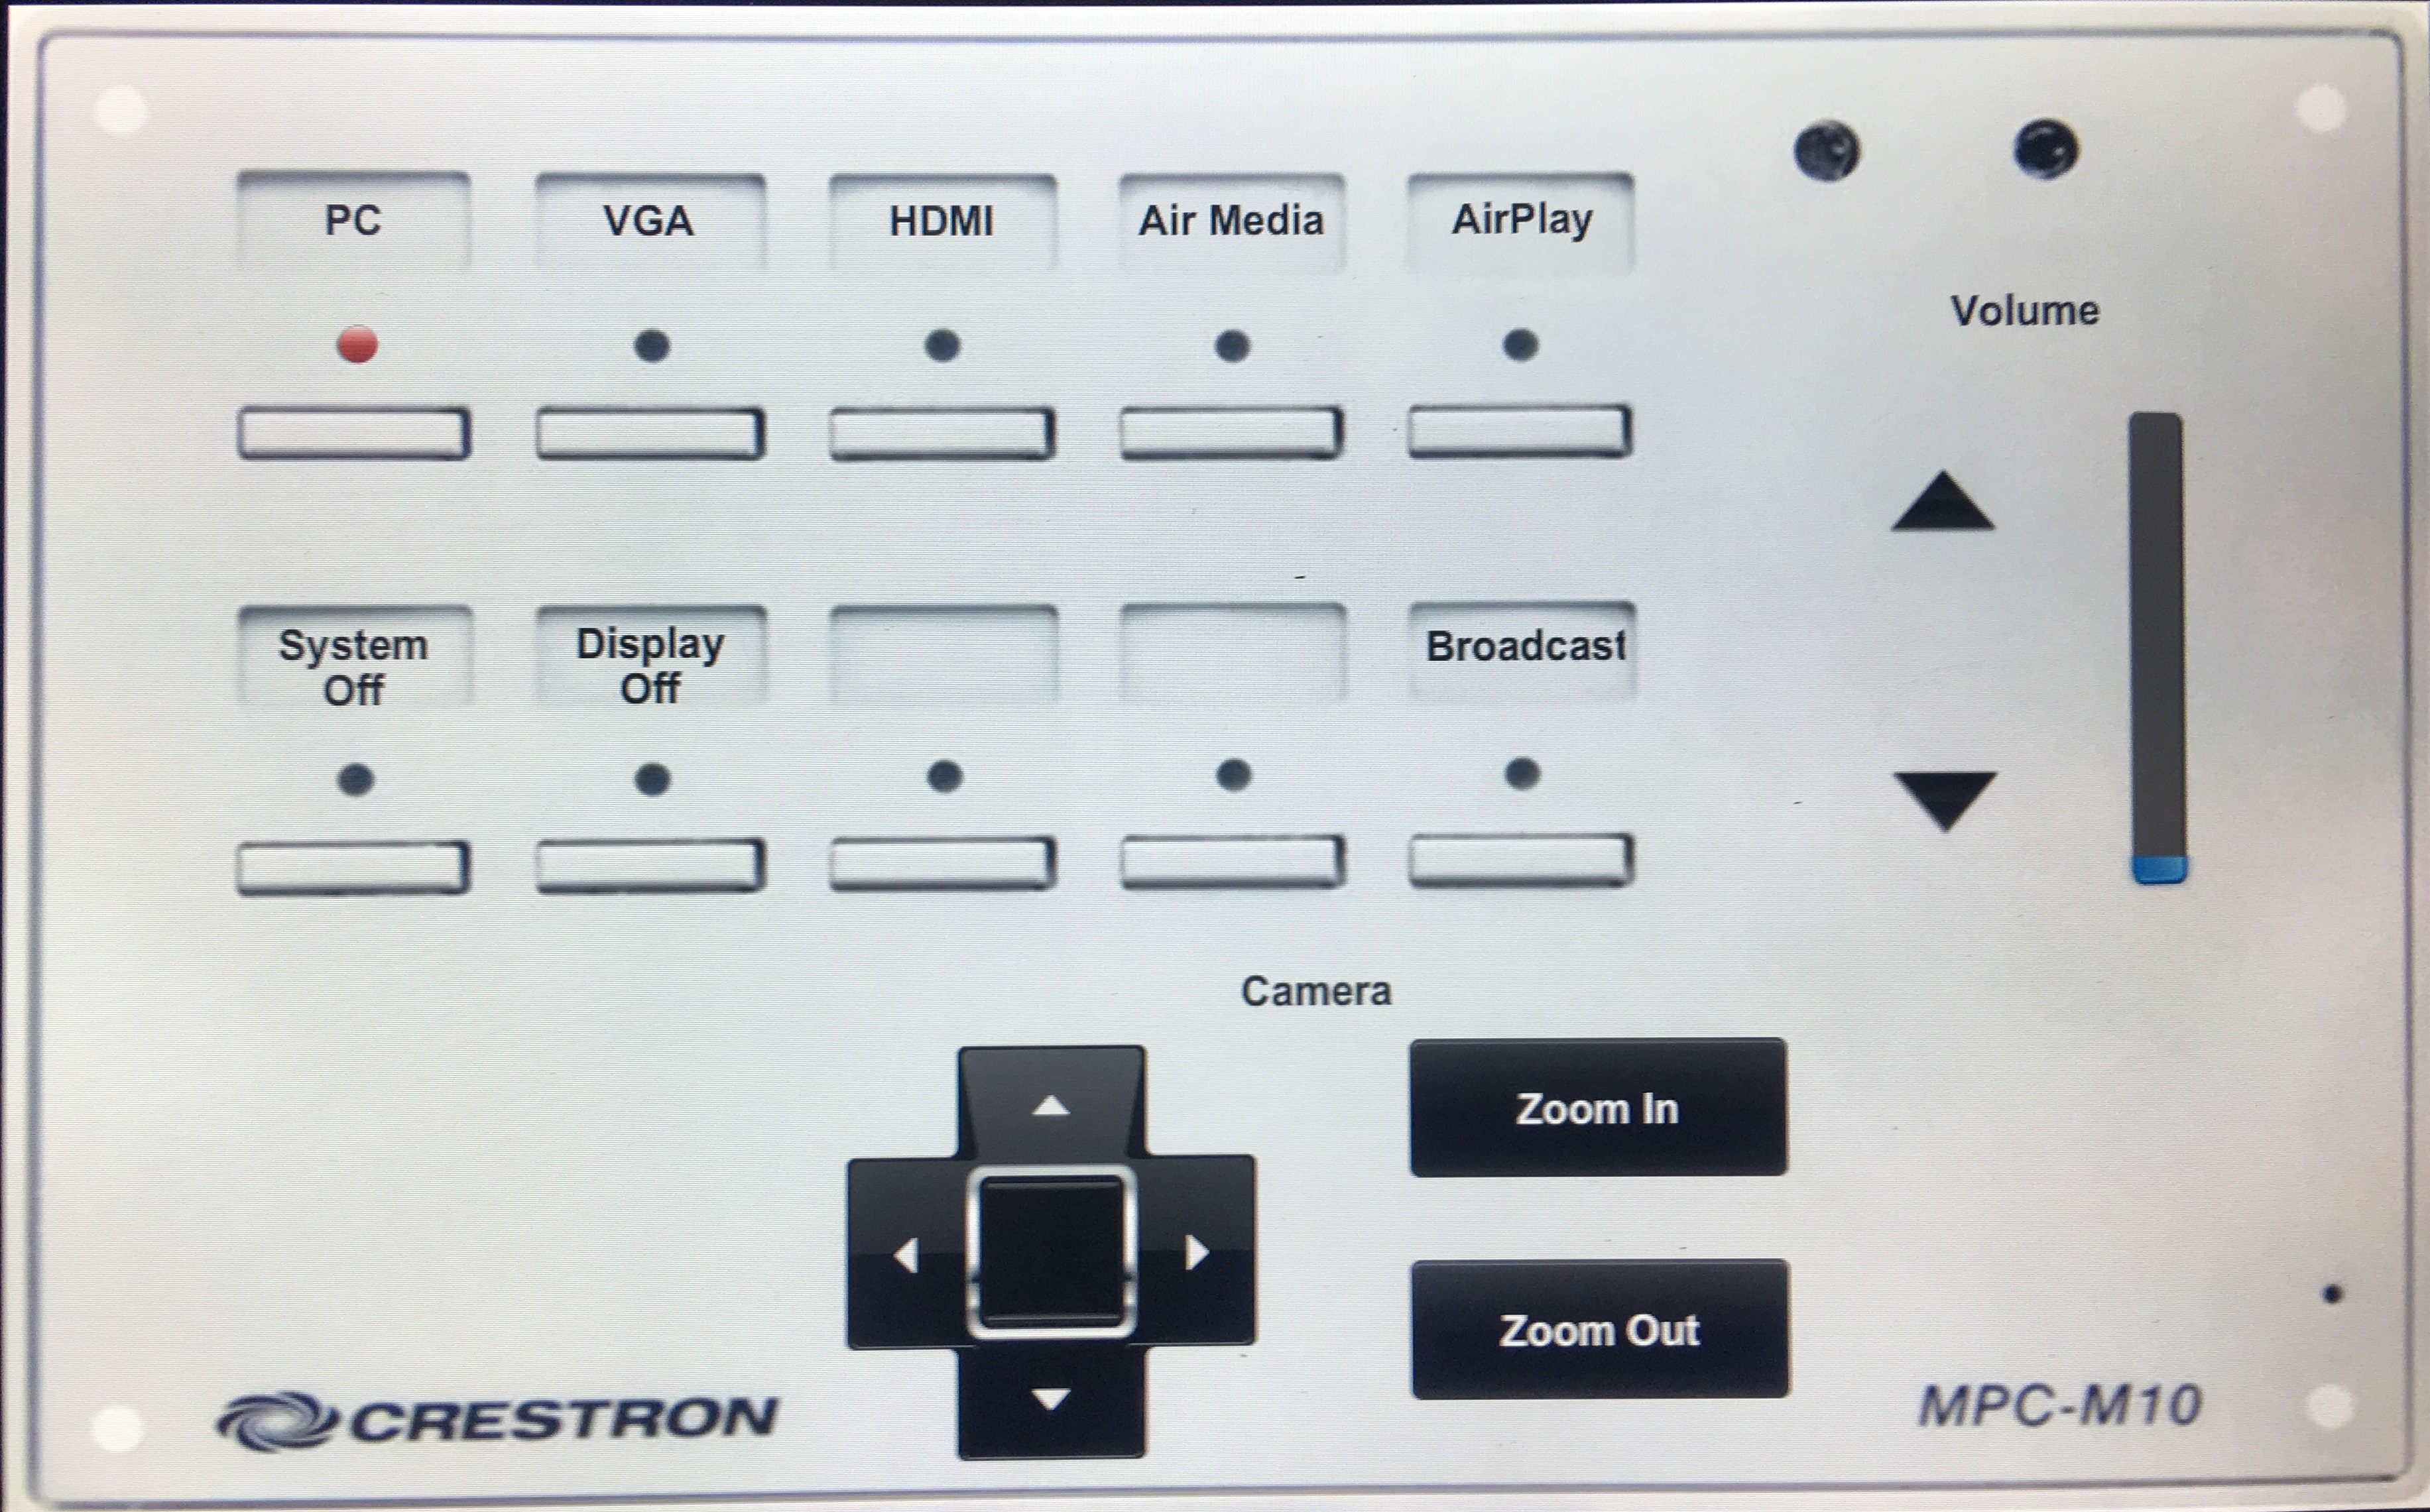 image depicting dls 209 crestron unit instructors station